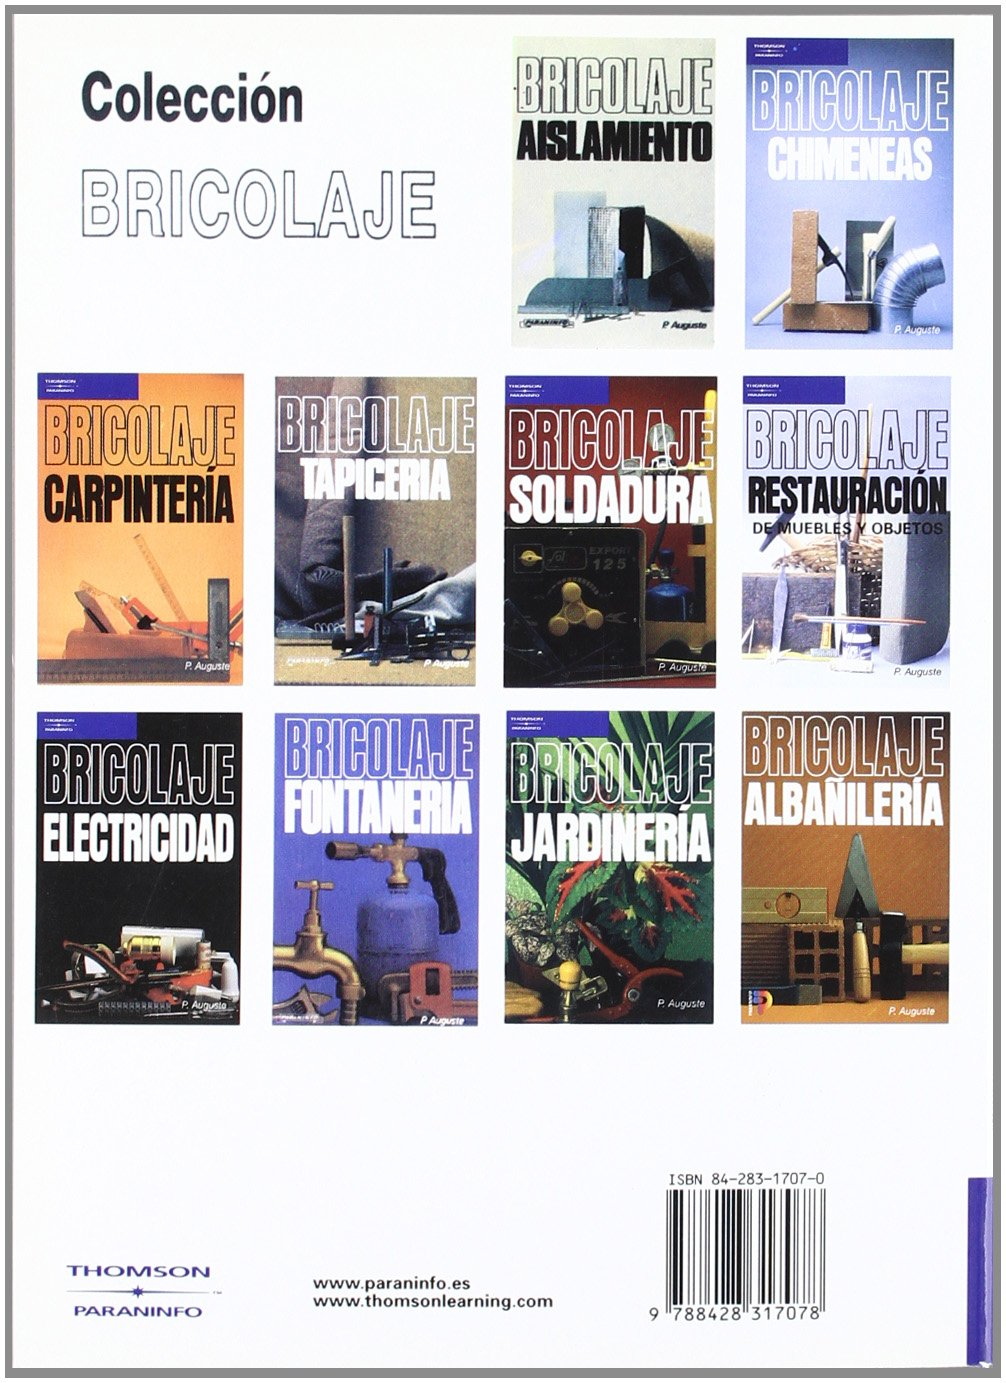 Bricolaje - Pintura (Spanish Edition): P. Auguste: 9788428317078: Amazon.com: Books